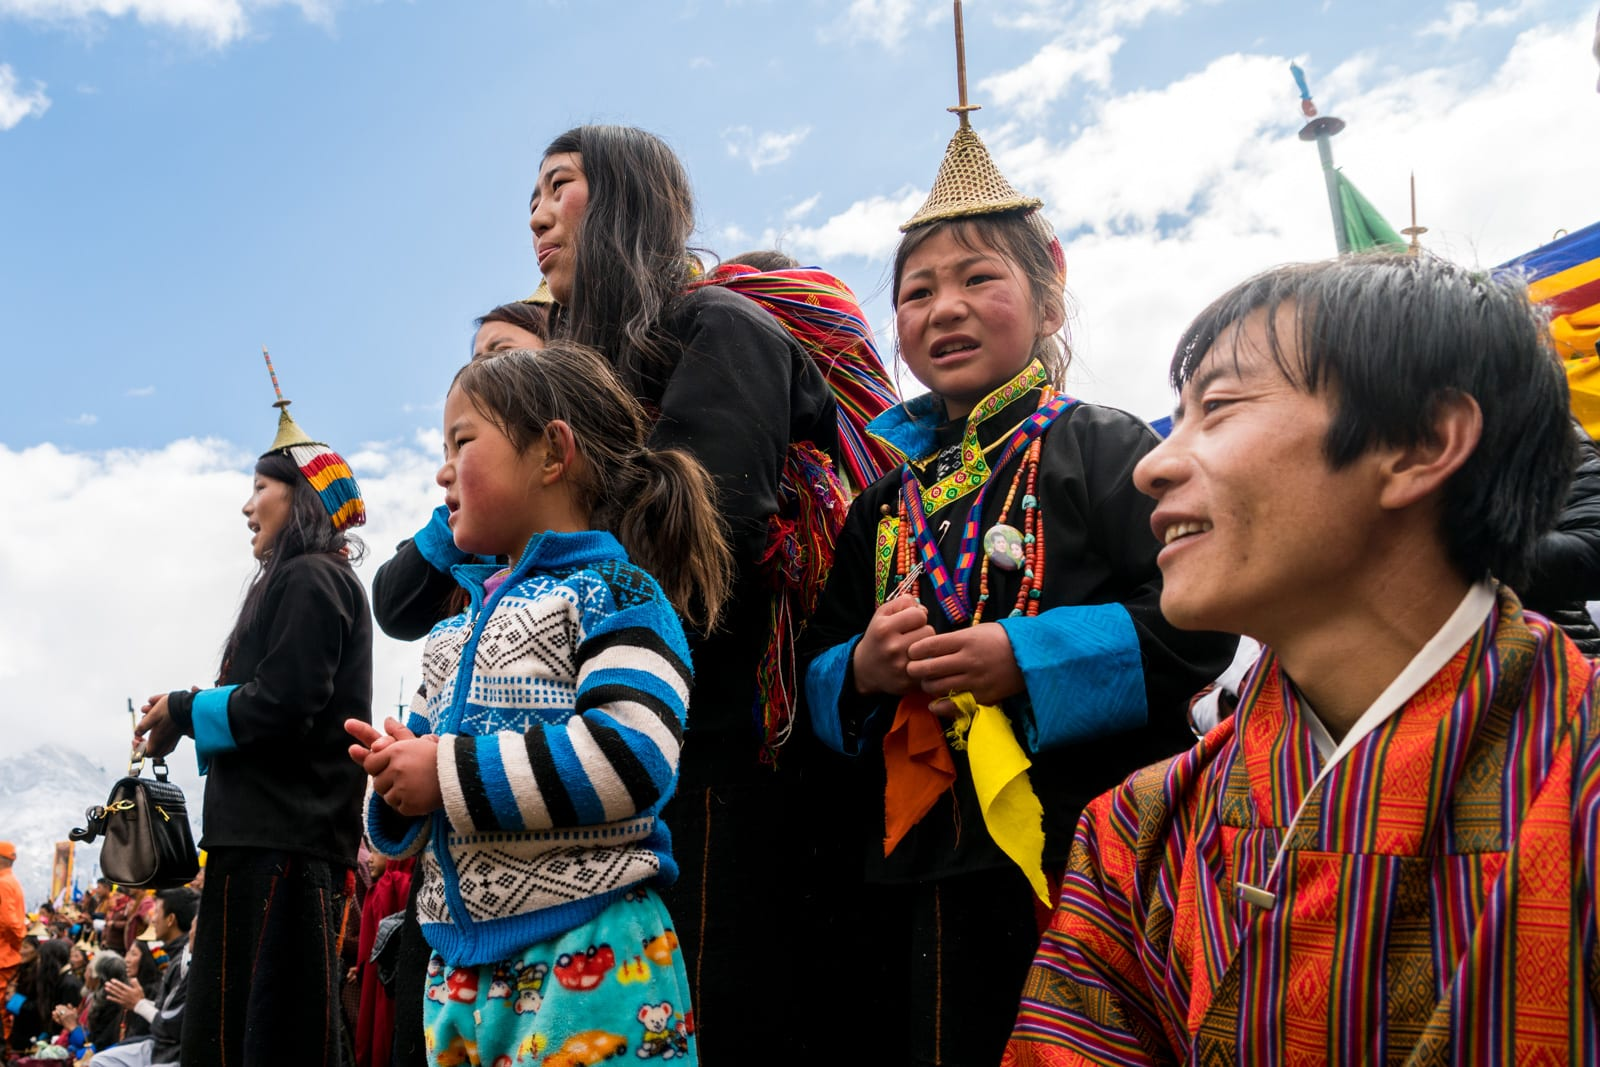 Guide to the Royal Highlander Festival in Bhutan - Excited crowd cheering - Lost With Purpose travel blog